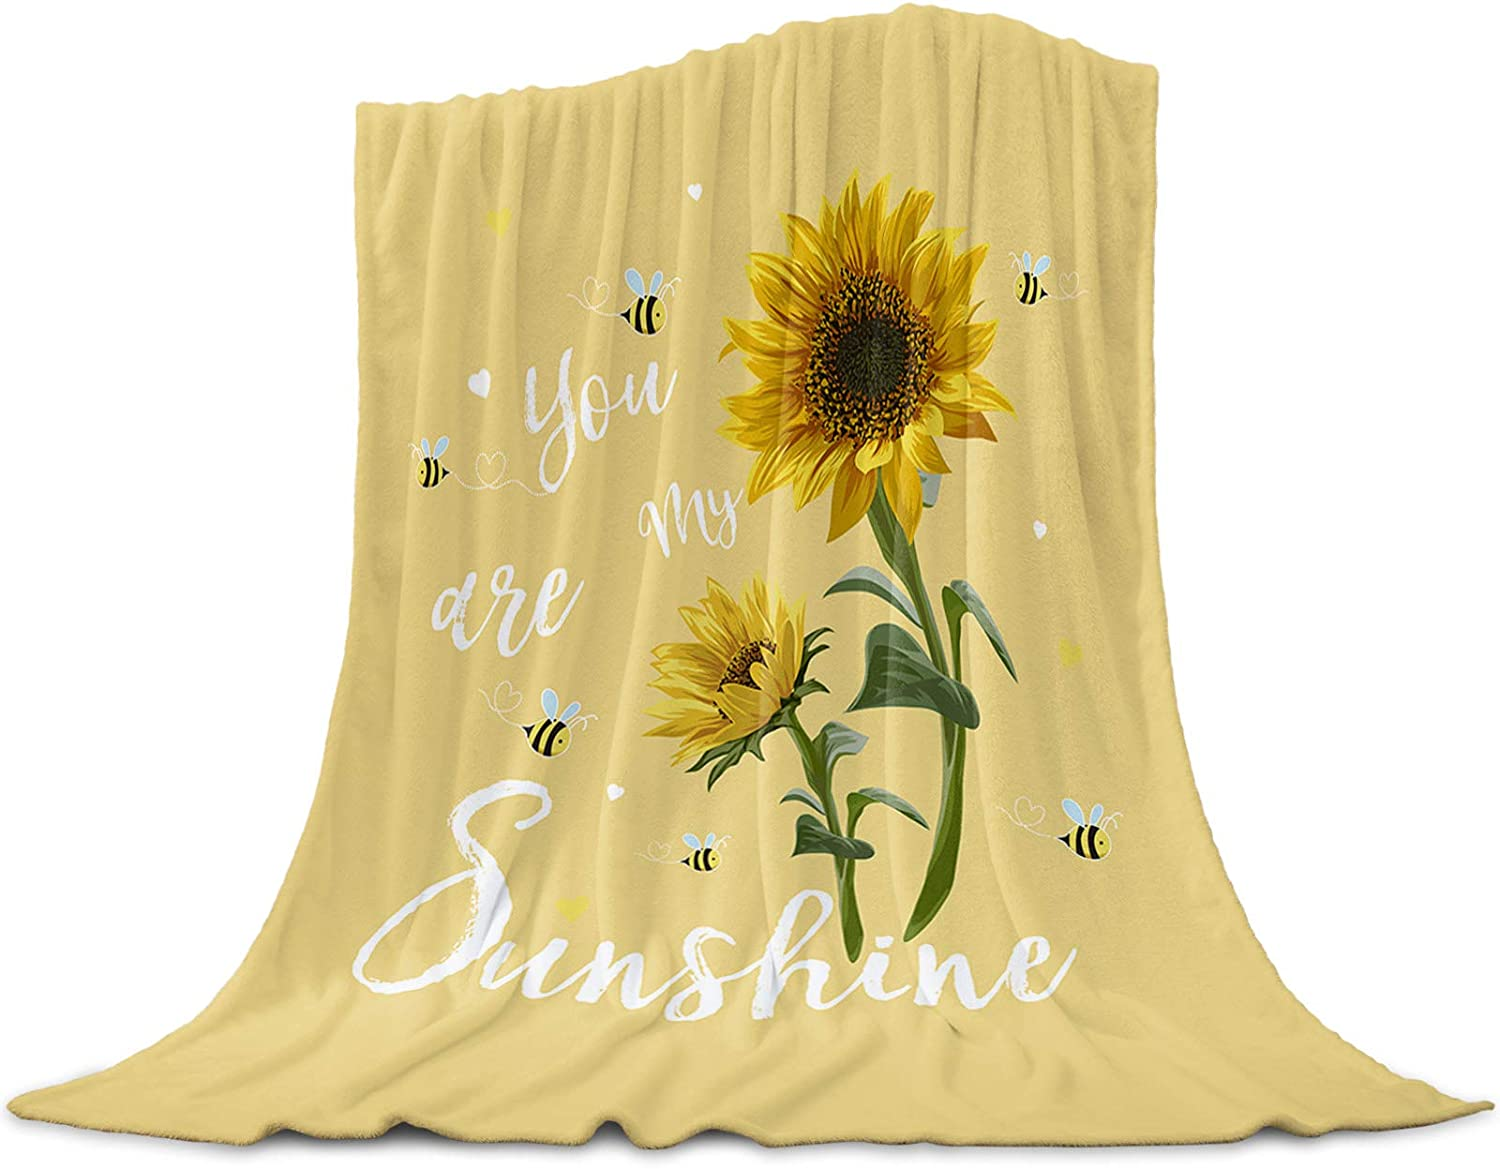 SODIKA Fleece Throw Blanket Flannel Throws Blankets and Couc Large Cash special price discharge sale for